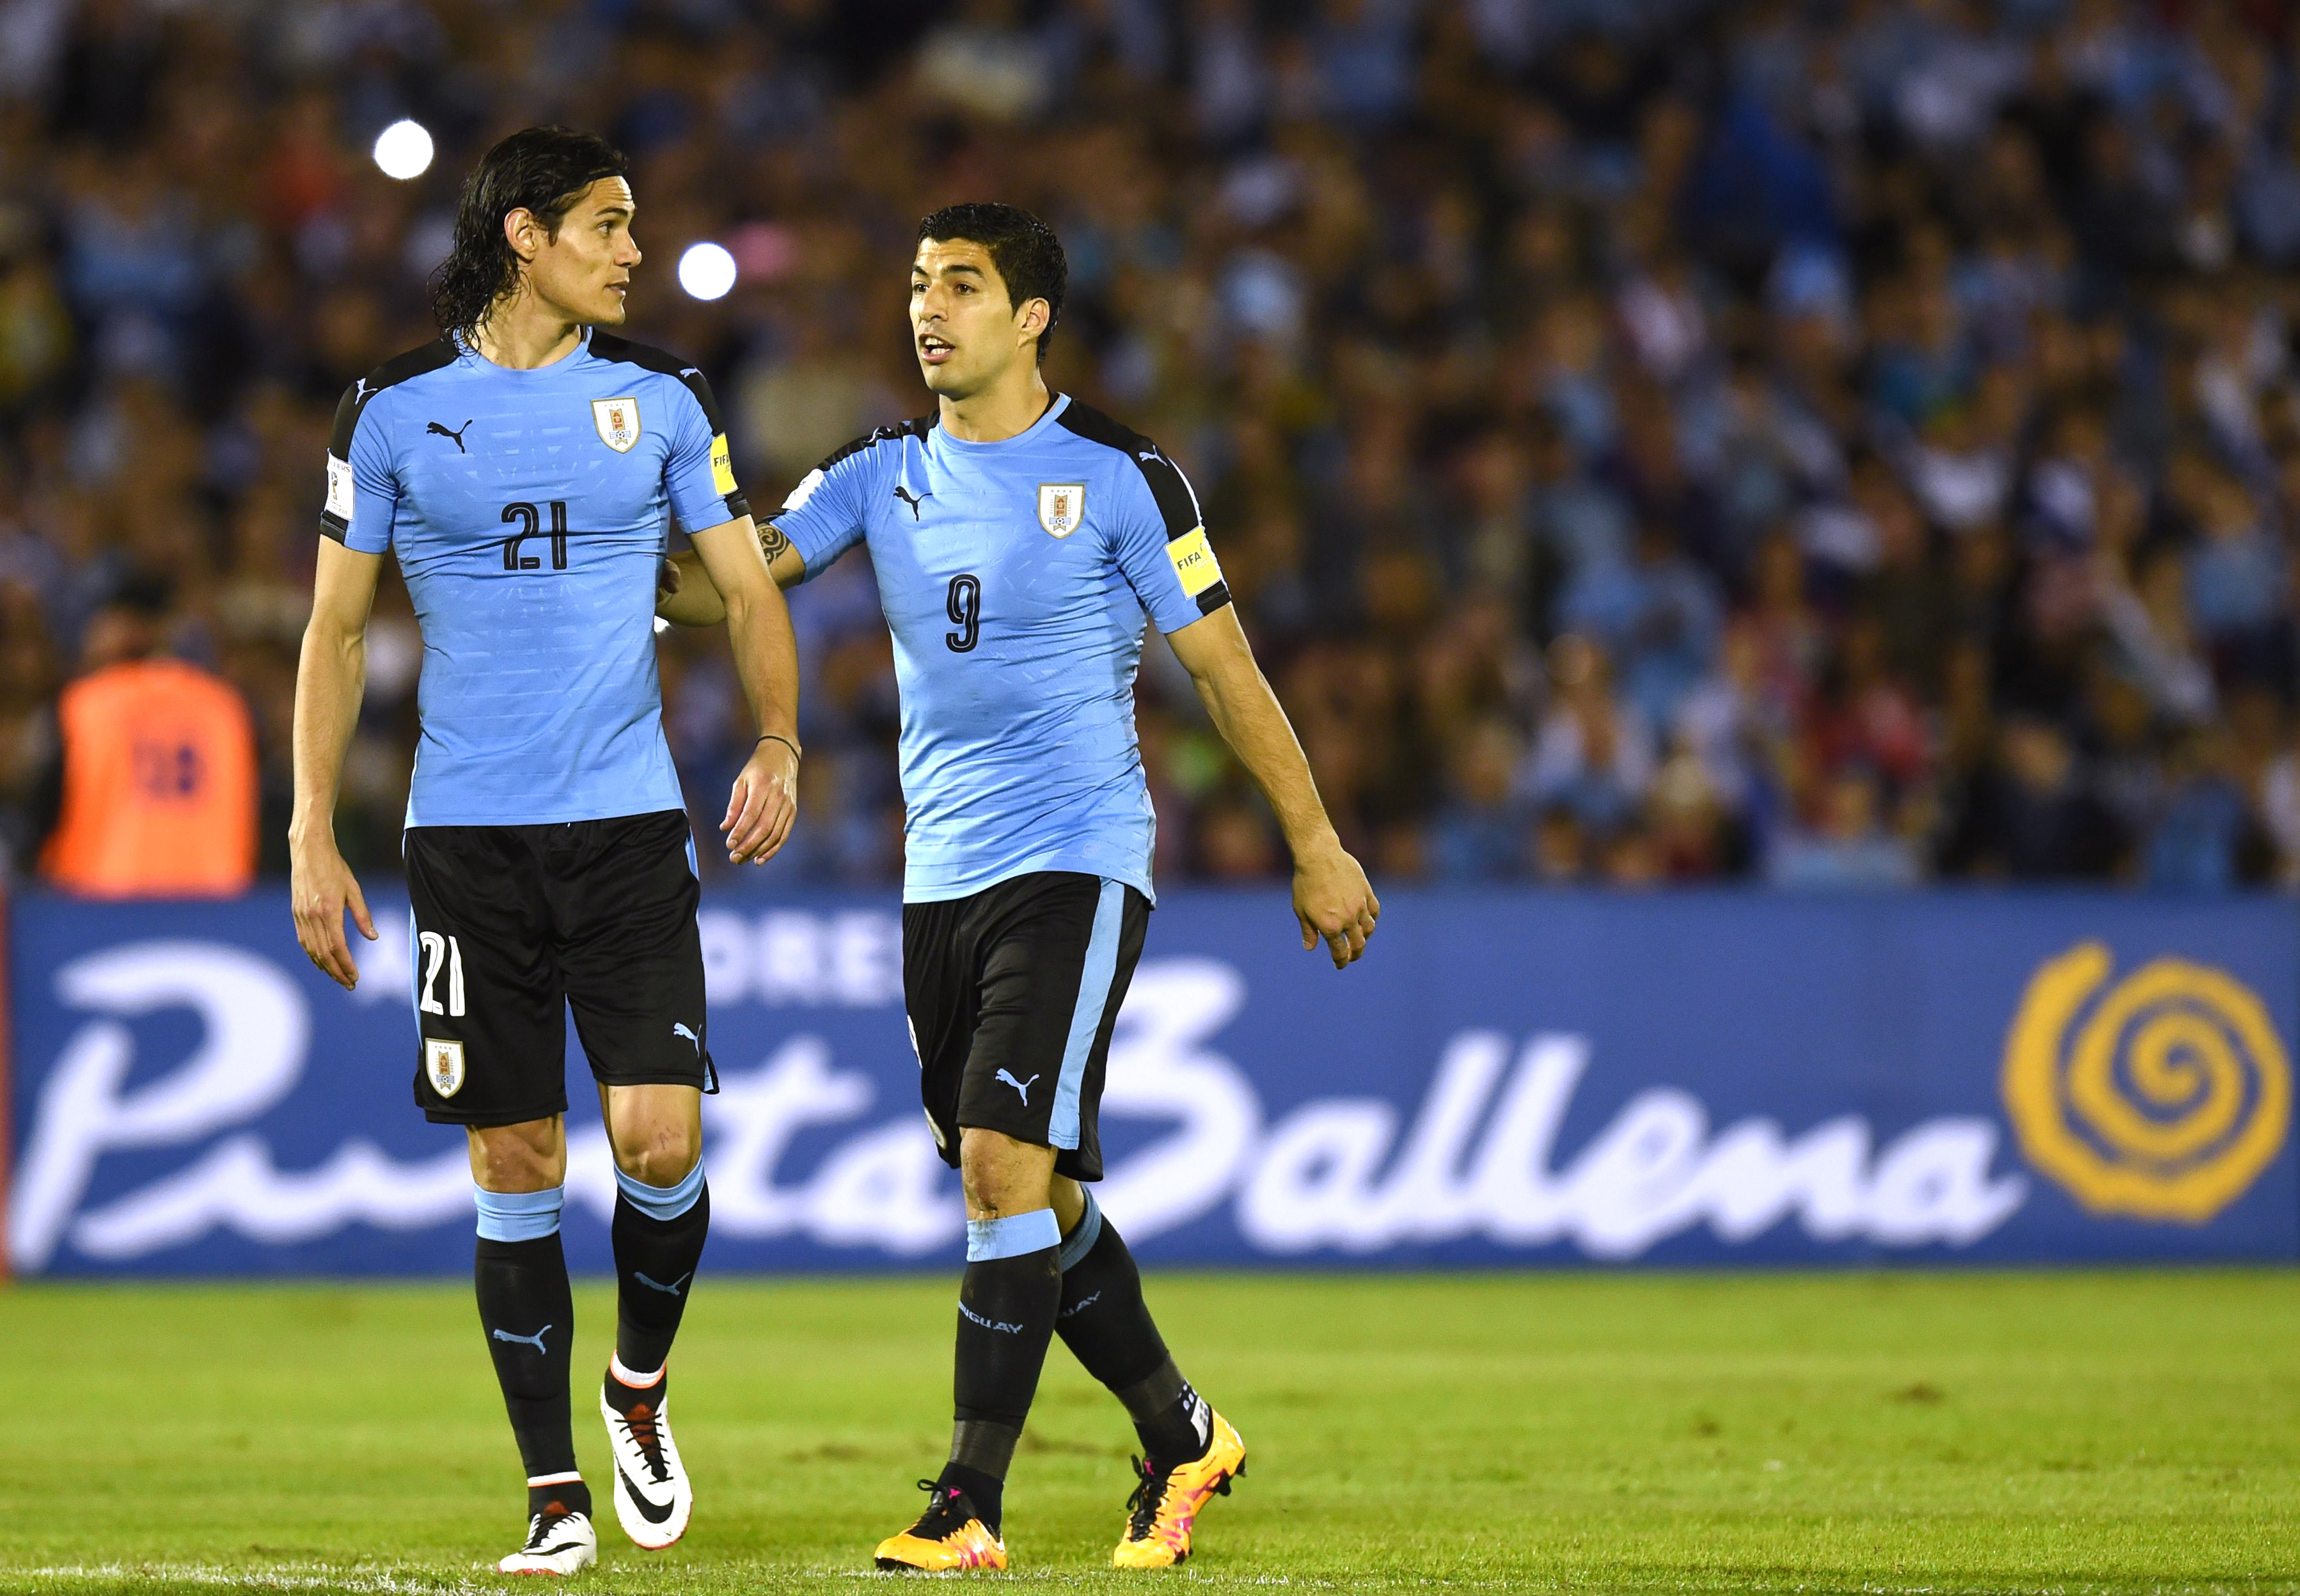 ¿Cuánto mide Edinson Cavani? - Altura - Real height GettyImages-518046244